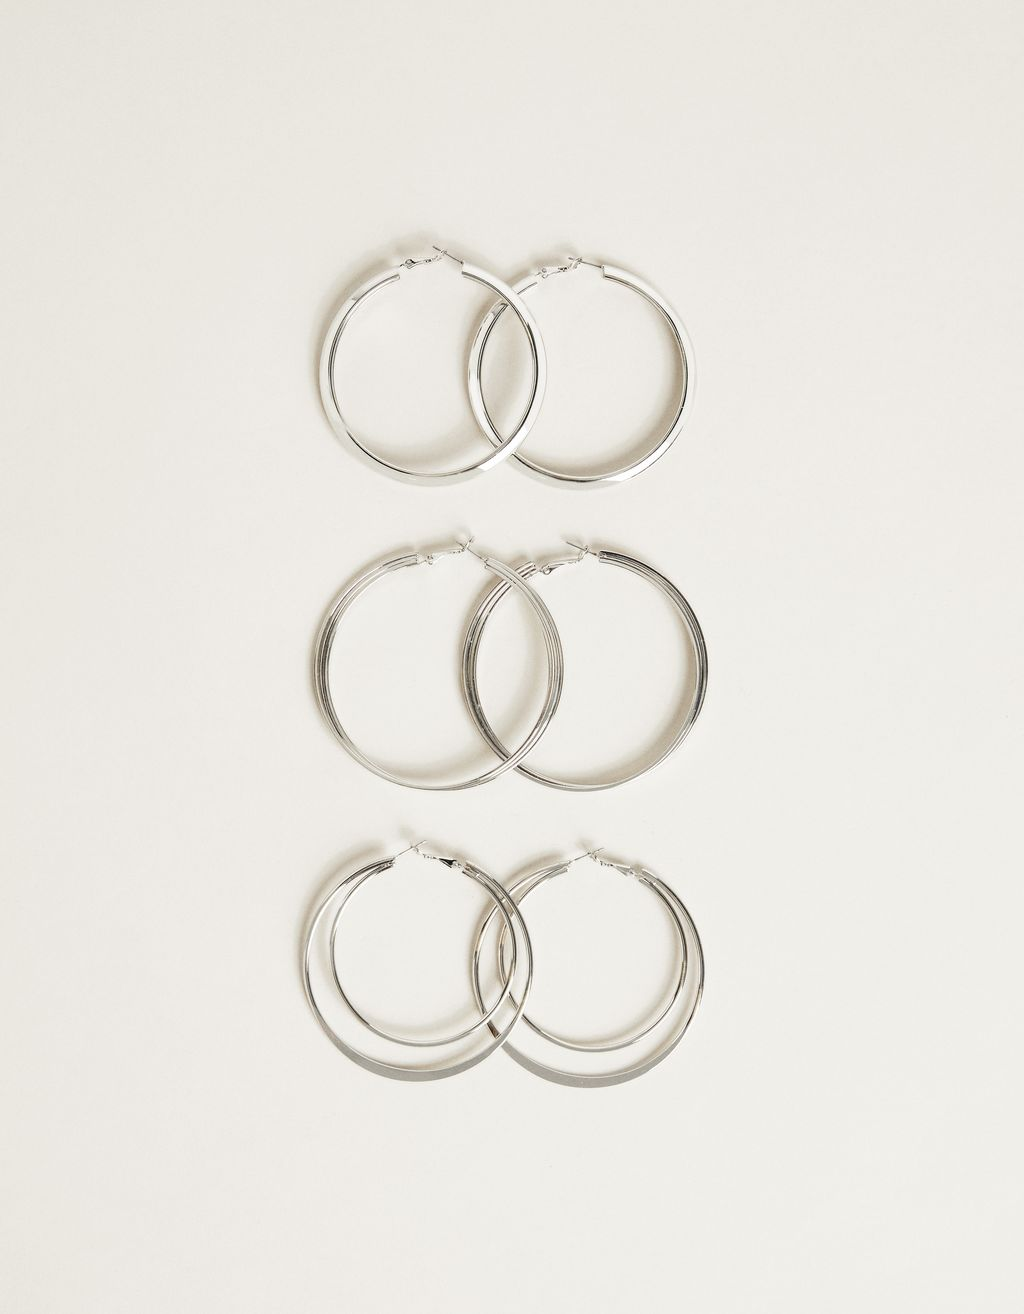 Set of maxi hoop earrings